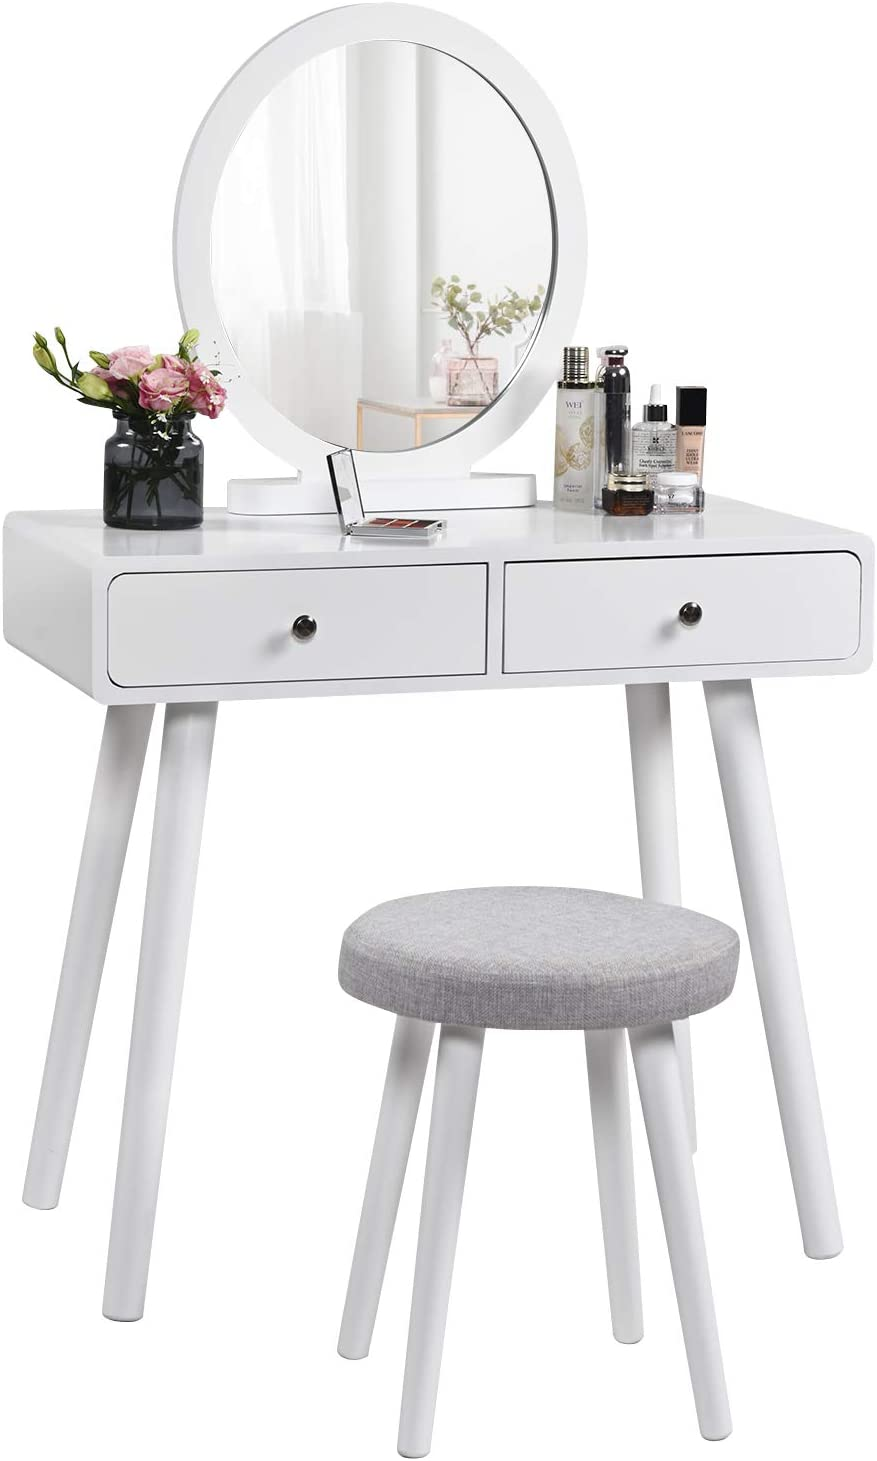 Vanity Set with Round Mirror 2 Large Drawers, Makeup Dressing Table with Removable Cushioned Stool, Modern Bedroom Vanity Desk for Girls Women, Easy Assembly, White